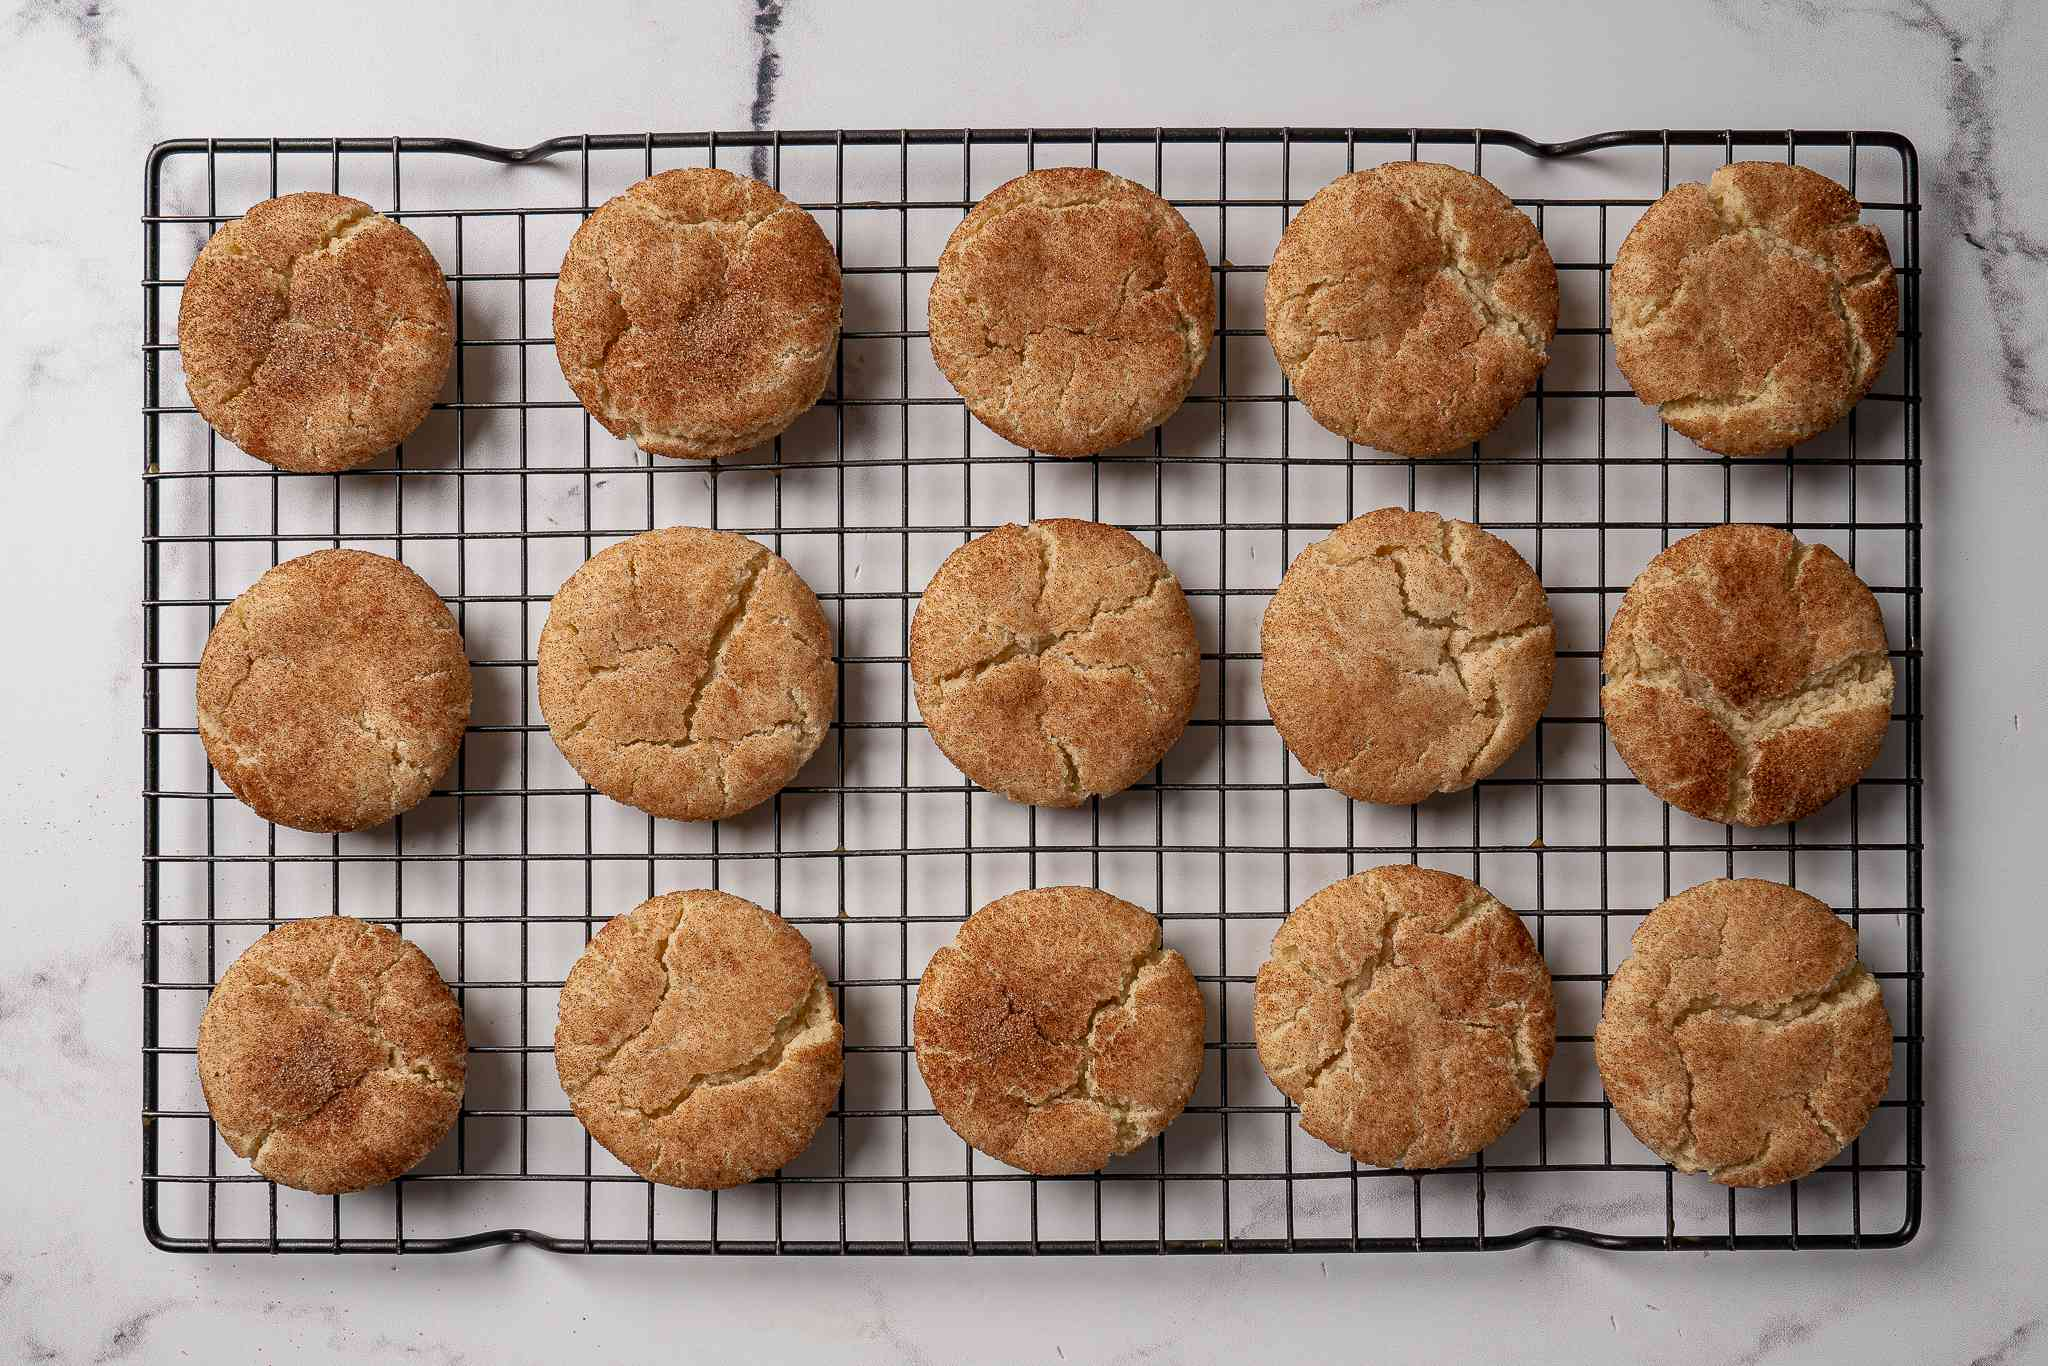 Vegan Snickerdoodles cooling on a wire rack